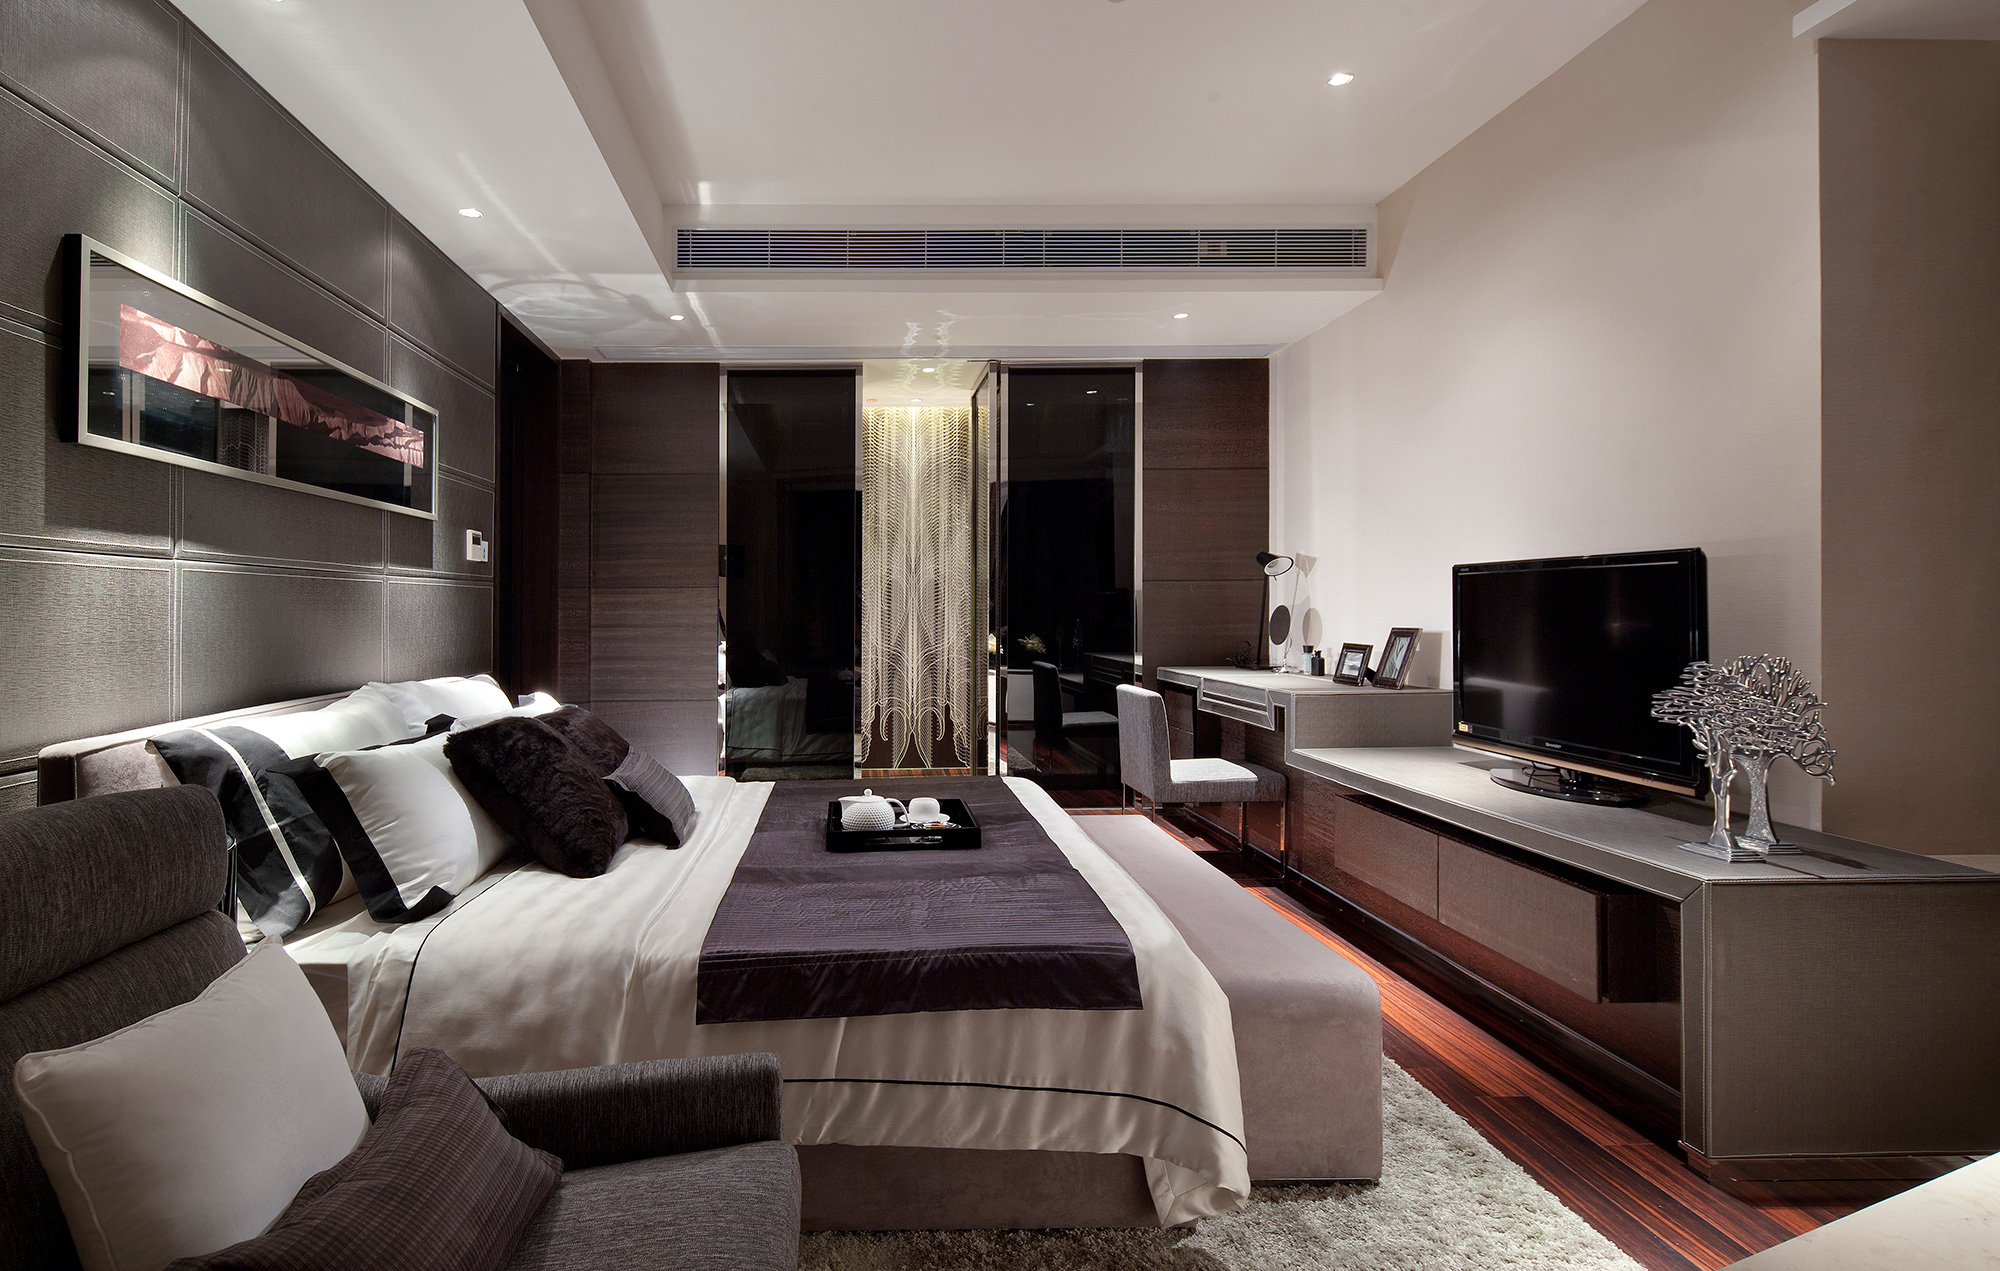 Synergistic modern spaces by steve leung for Master bedroom designs modern